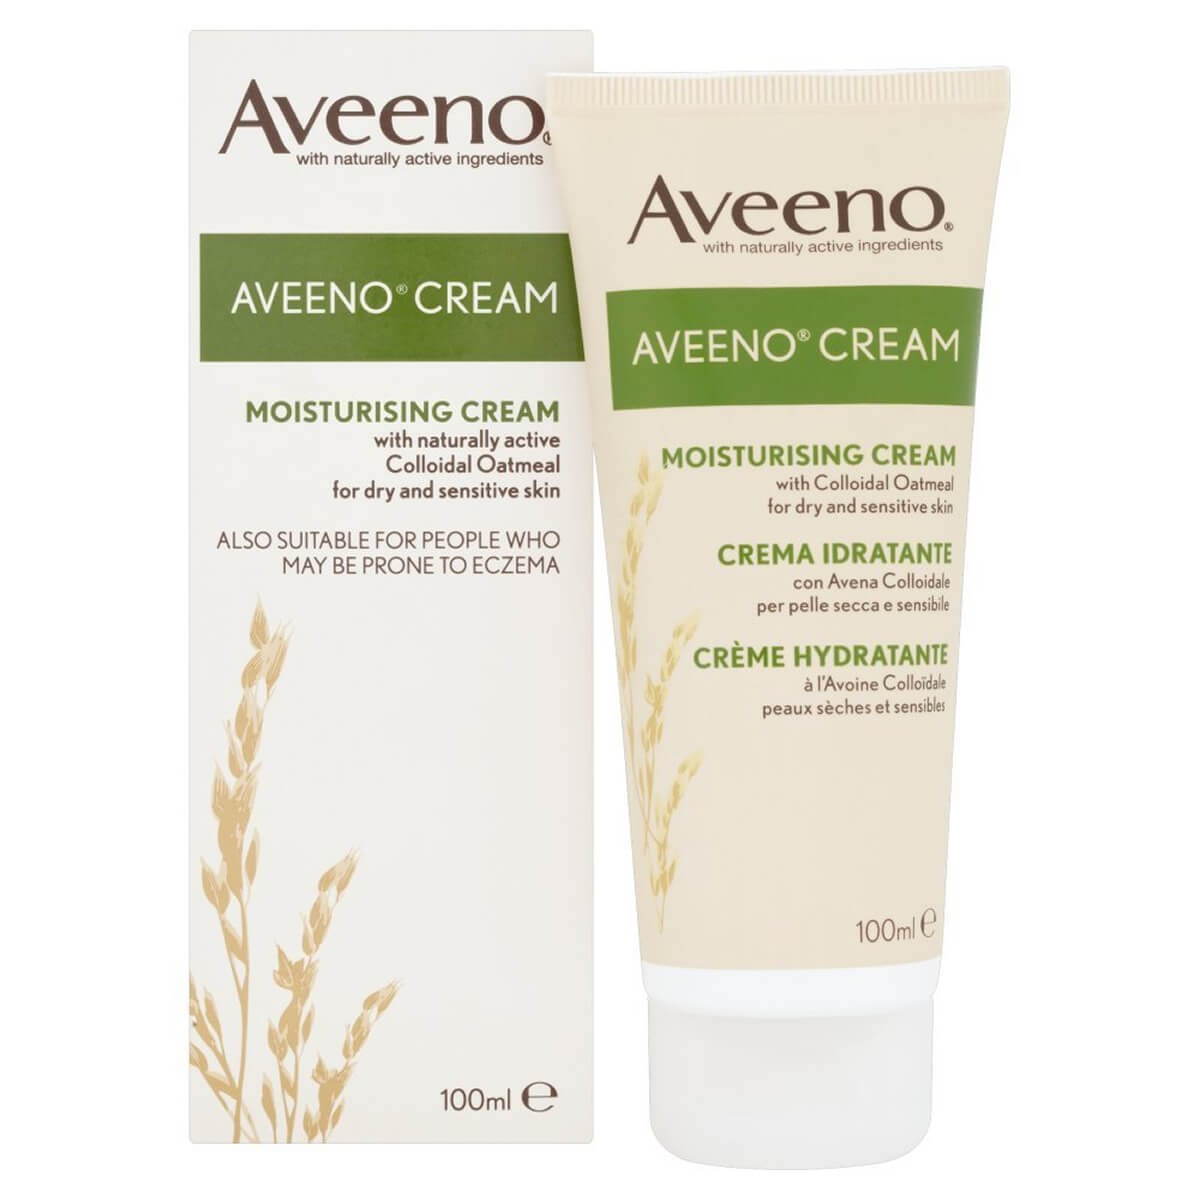 Aveeno Moisturising Cream with Active Colloidal Oatmeal